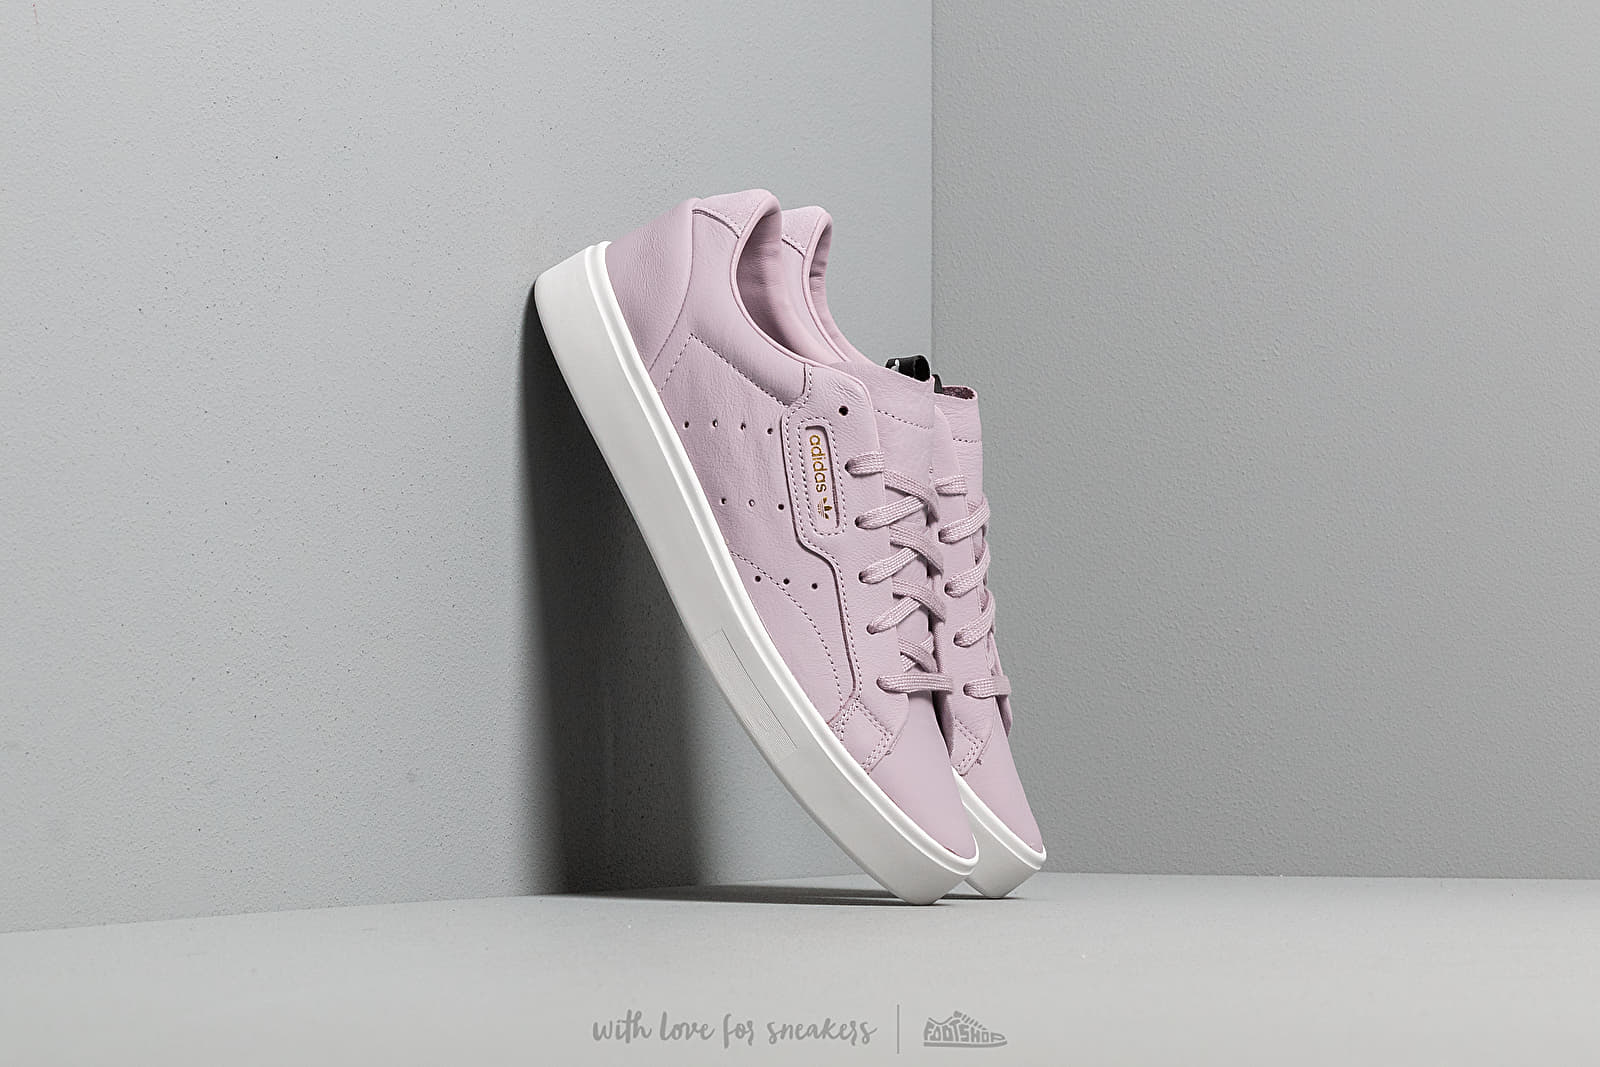 Soft Vision Adidas Sleek Leather Low Top Sneakers | C21